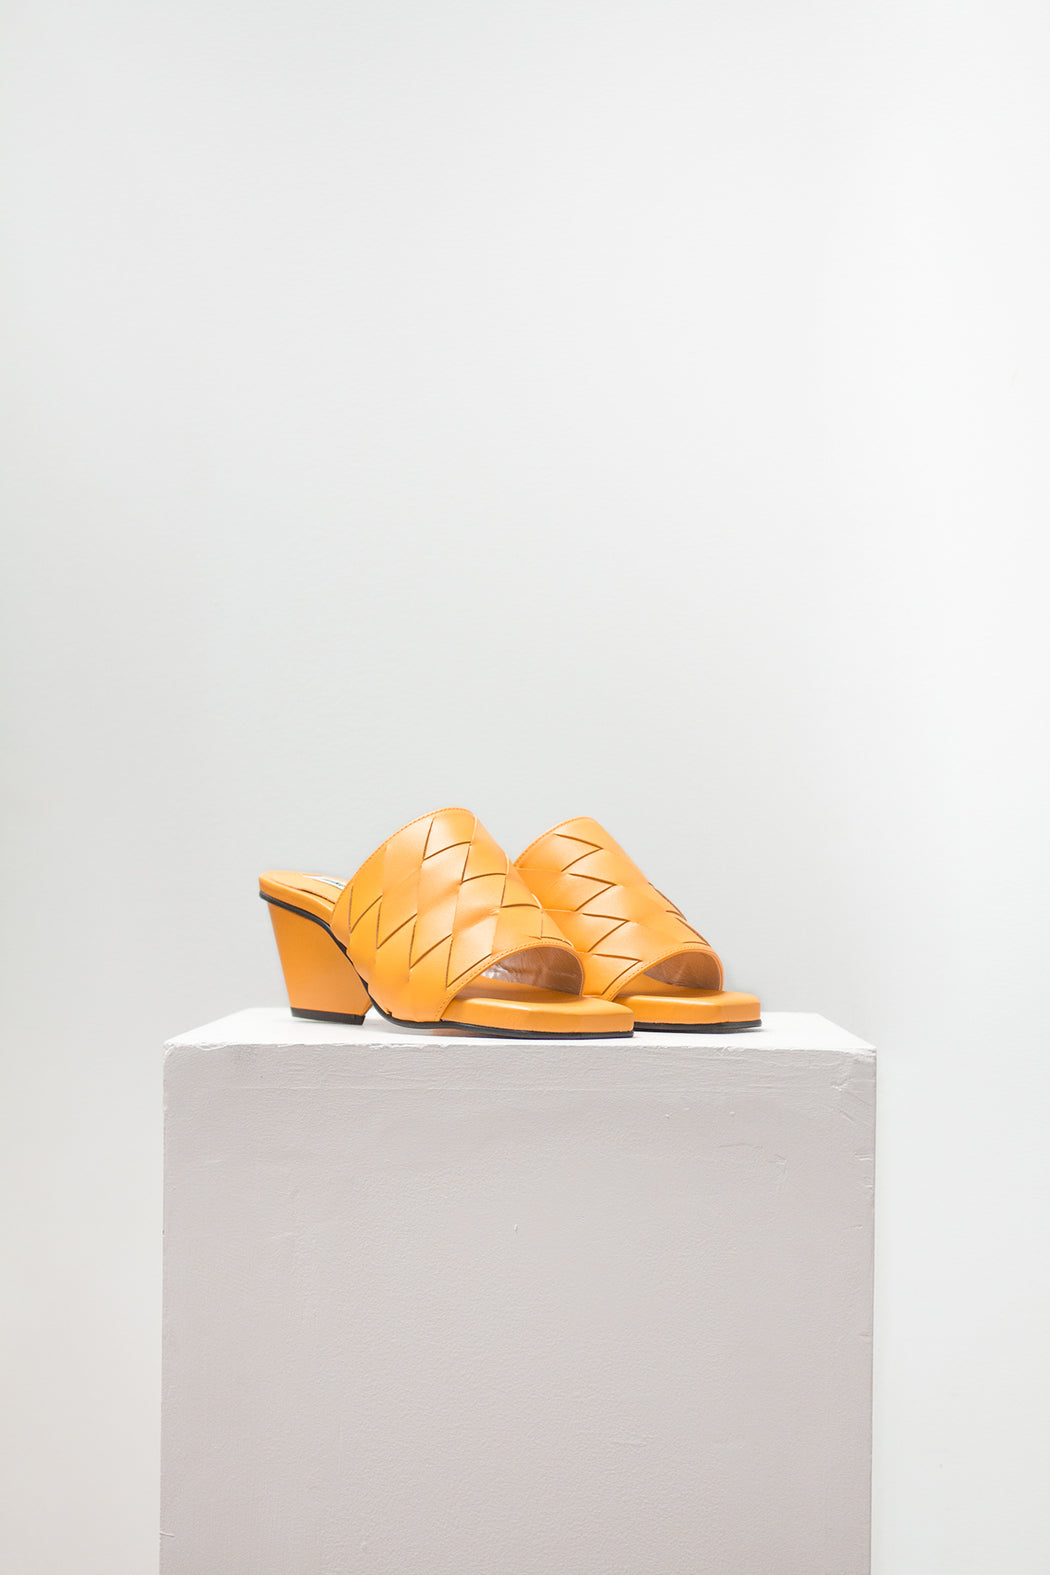 Reike Nen Shoes | Weaving Middle Mule Mandarin | Hazel & Rose